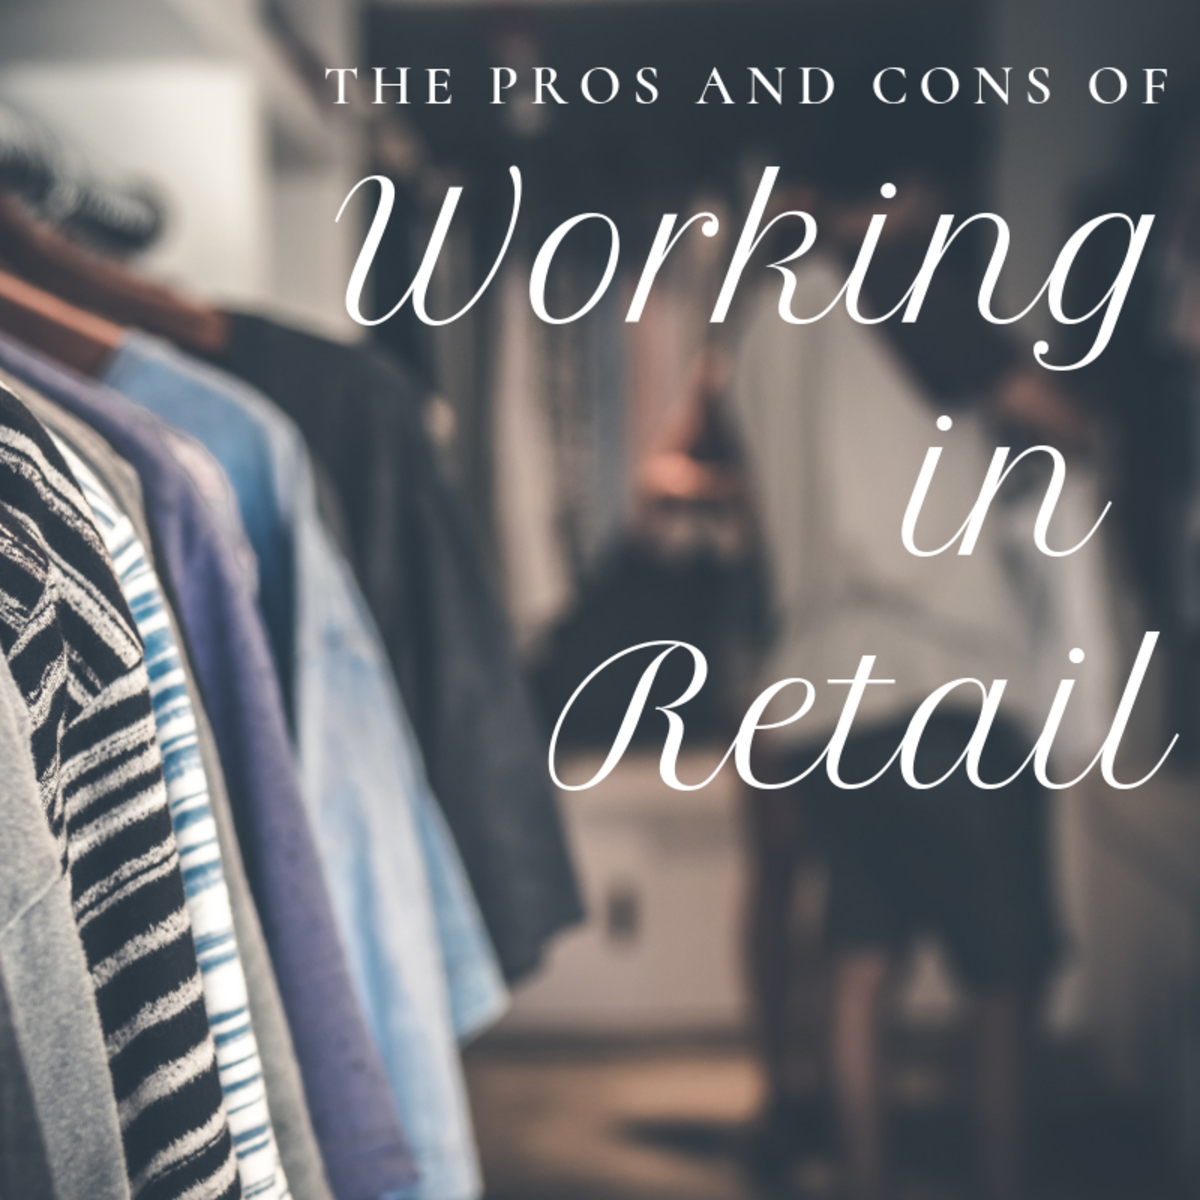 The Pros and Cons of Working in Retail